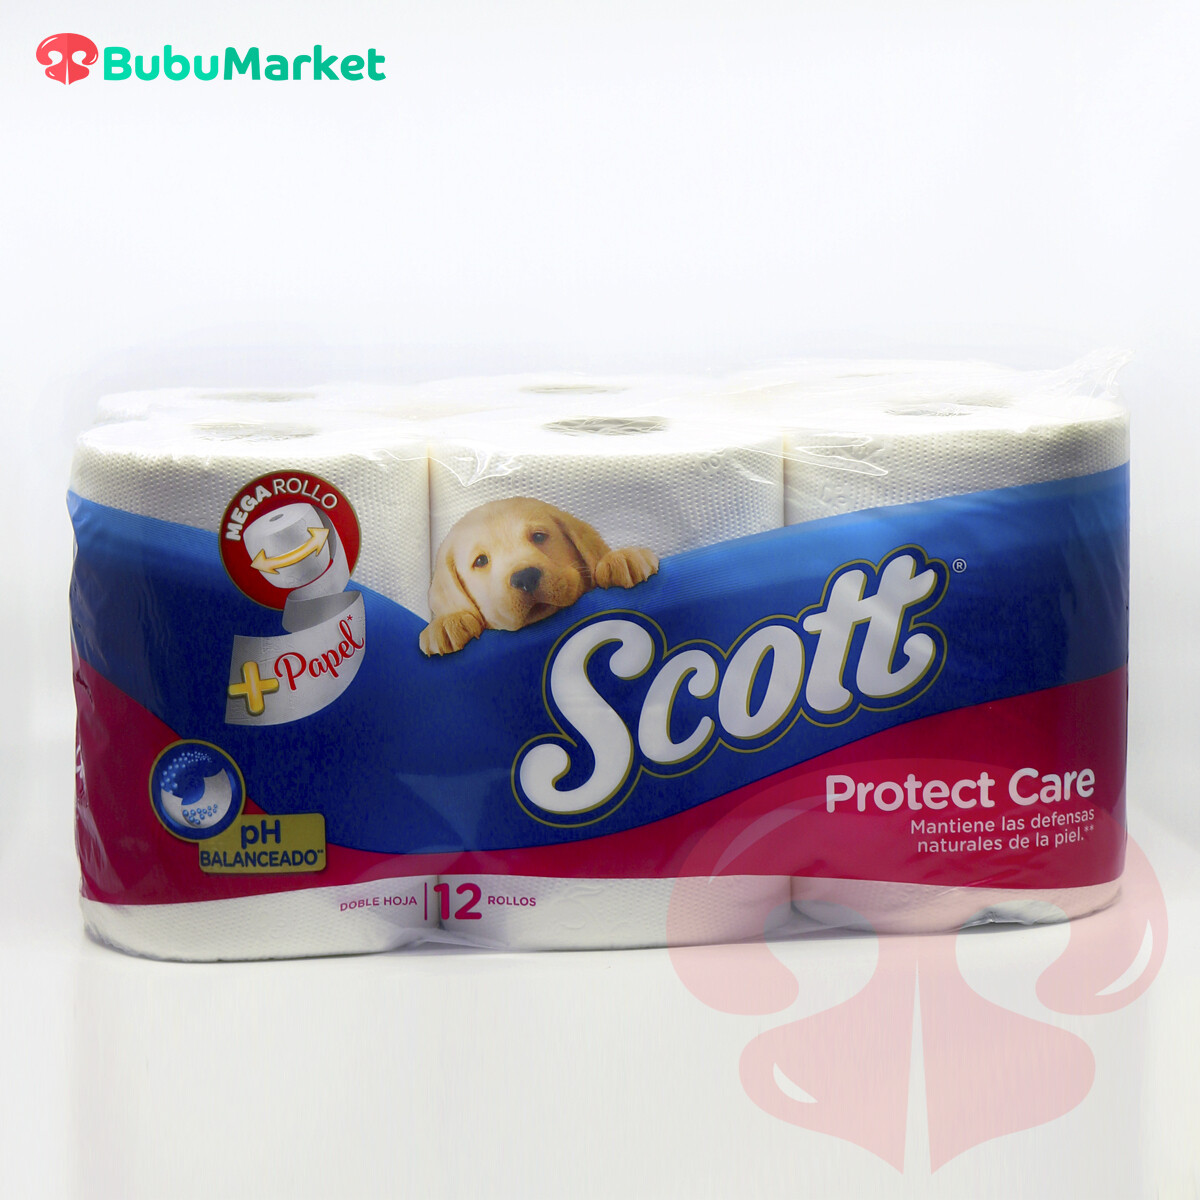 PAPEL HIGIENICO SCOTT PROTECT CARE DE 12 ROLLOS DOBLE HOJA